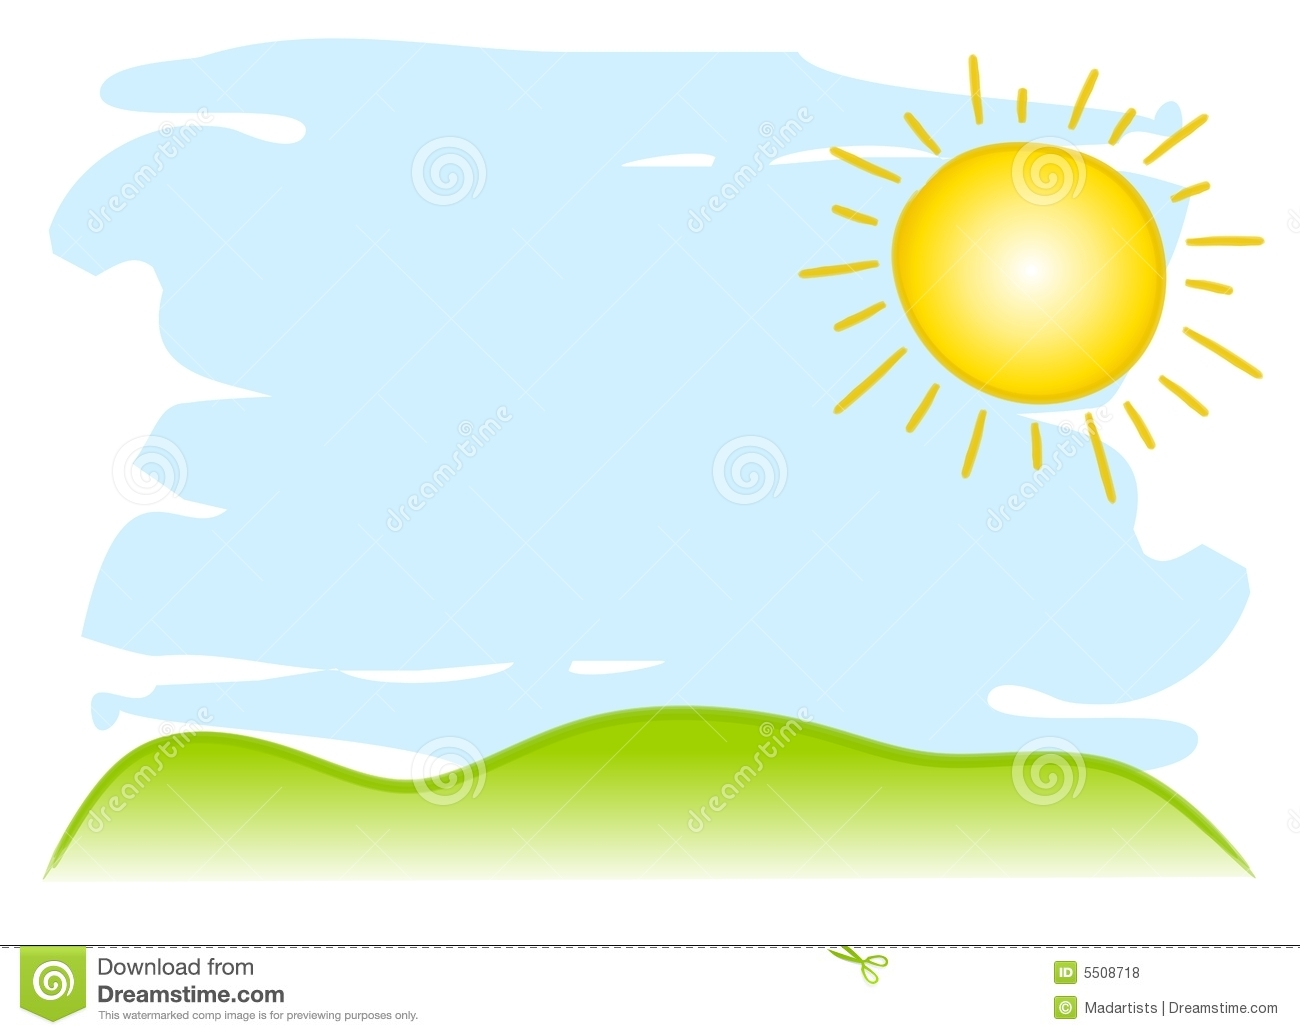 Sunny clipart #3, Download drawings